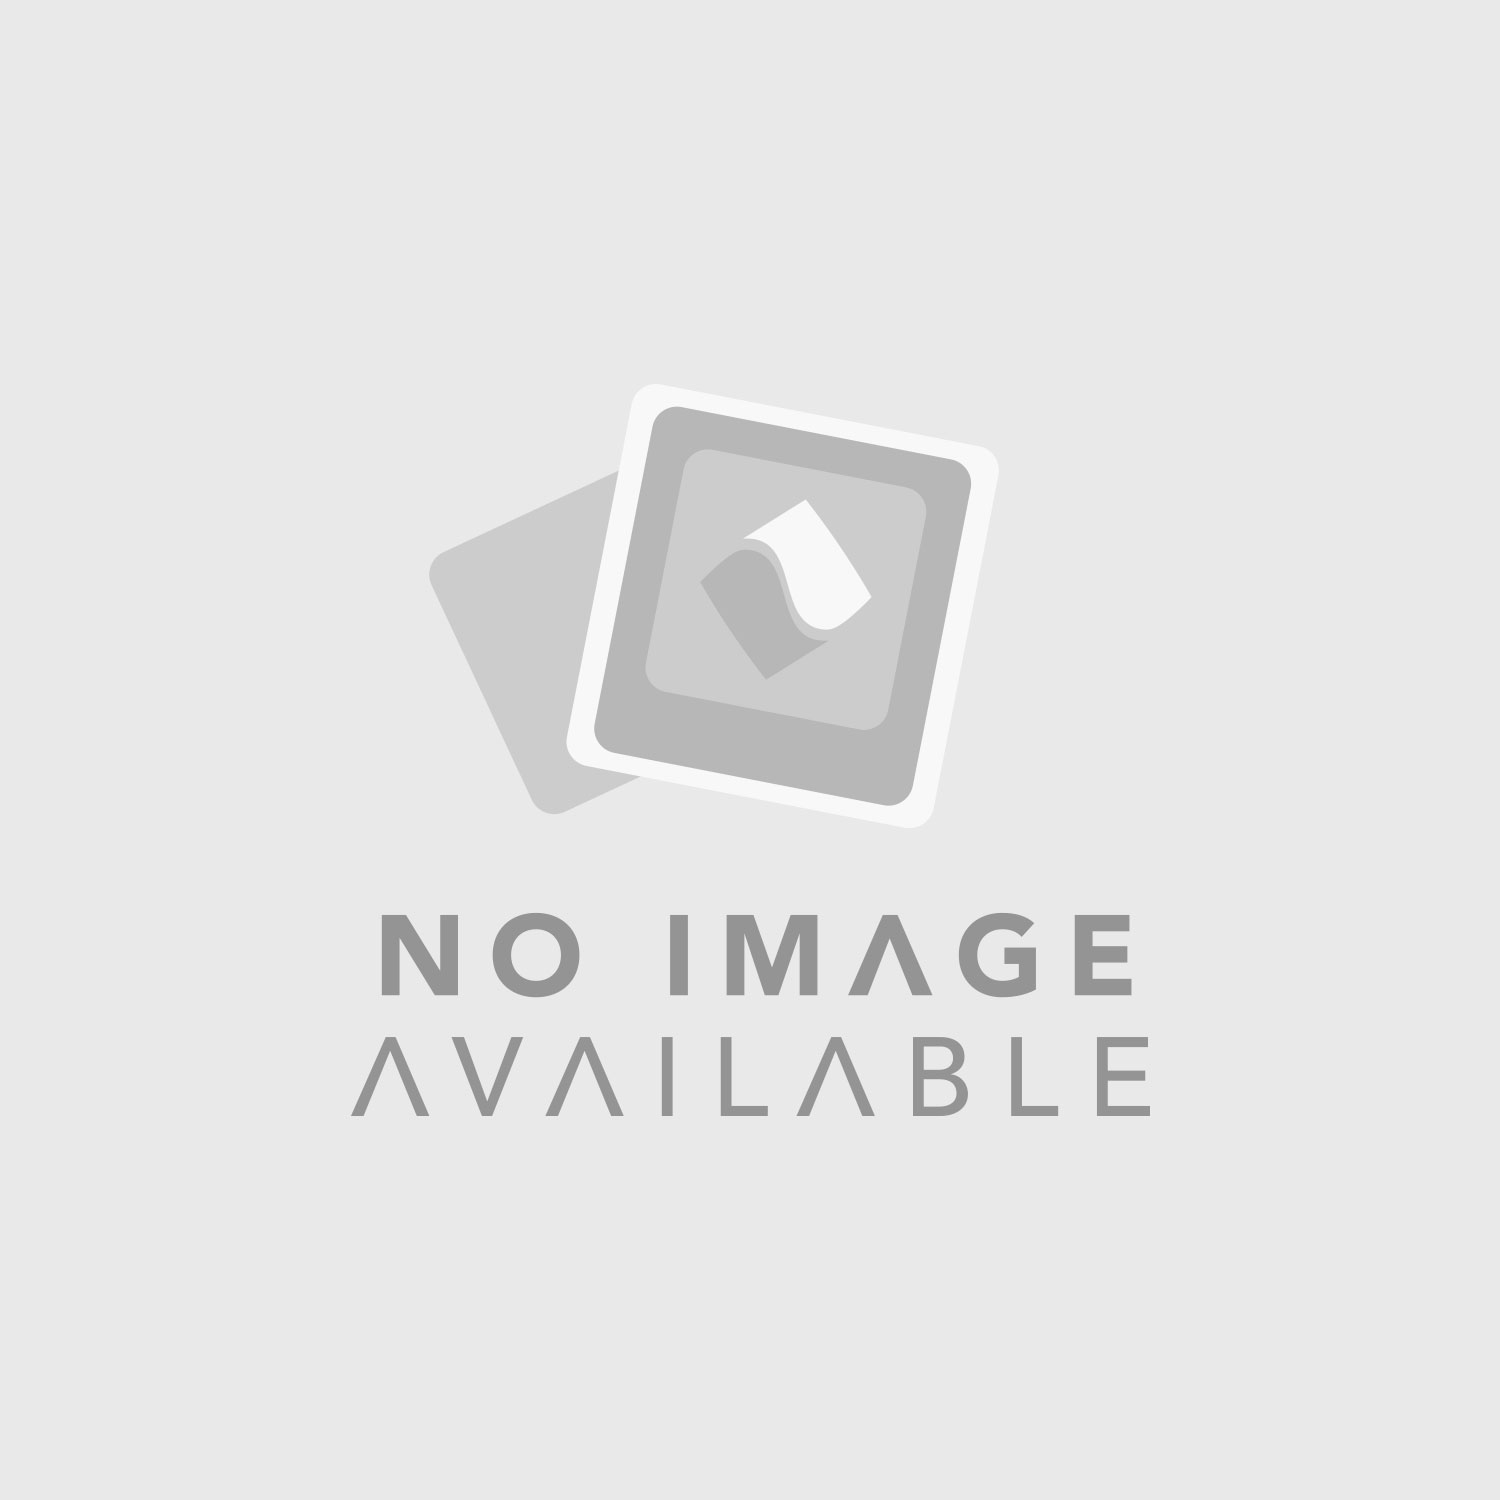 Neutrik NL4MP 4-Pole speakON Panel Mount Connector